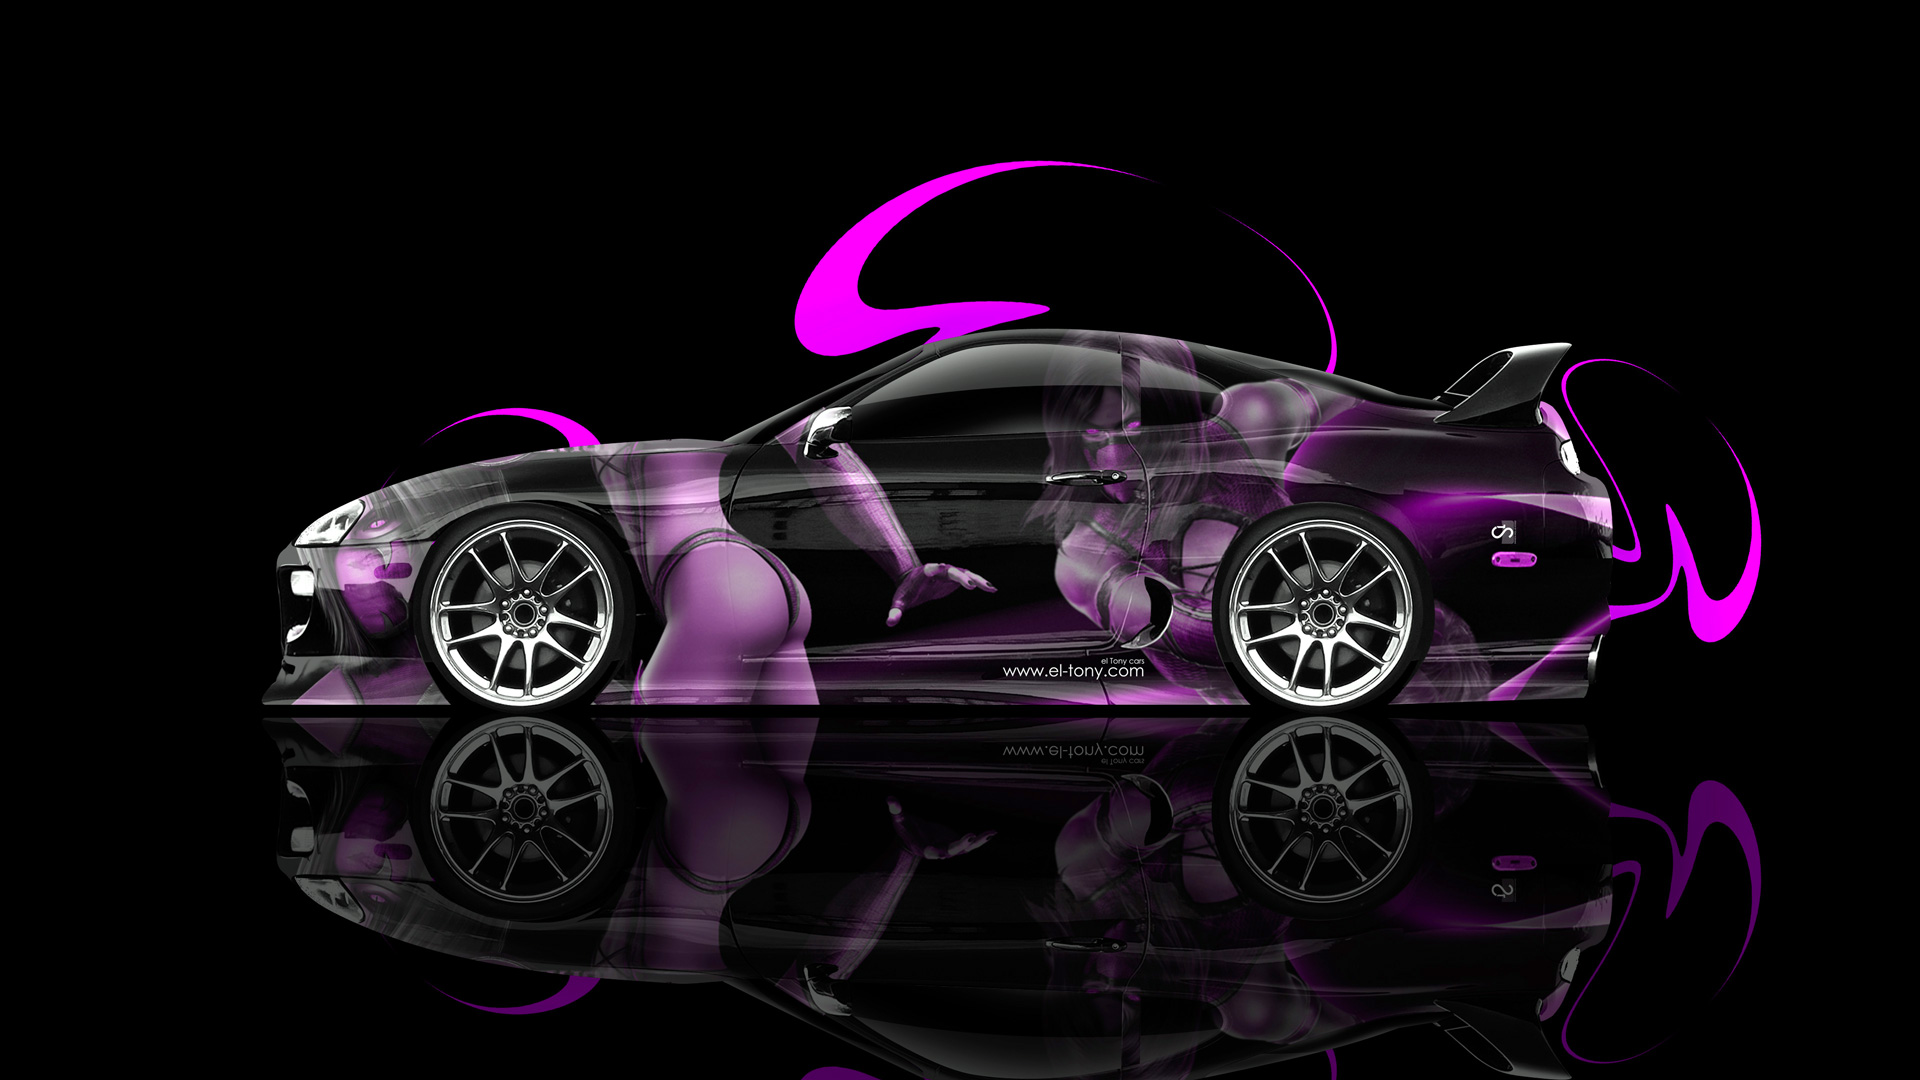 Attractive Ordinaire Toyota Supra Mileena Mortal Combat Aerography Car 2014